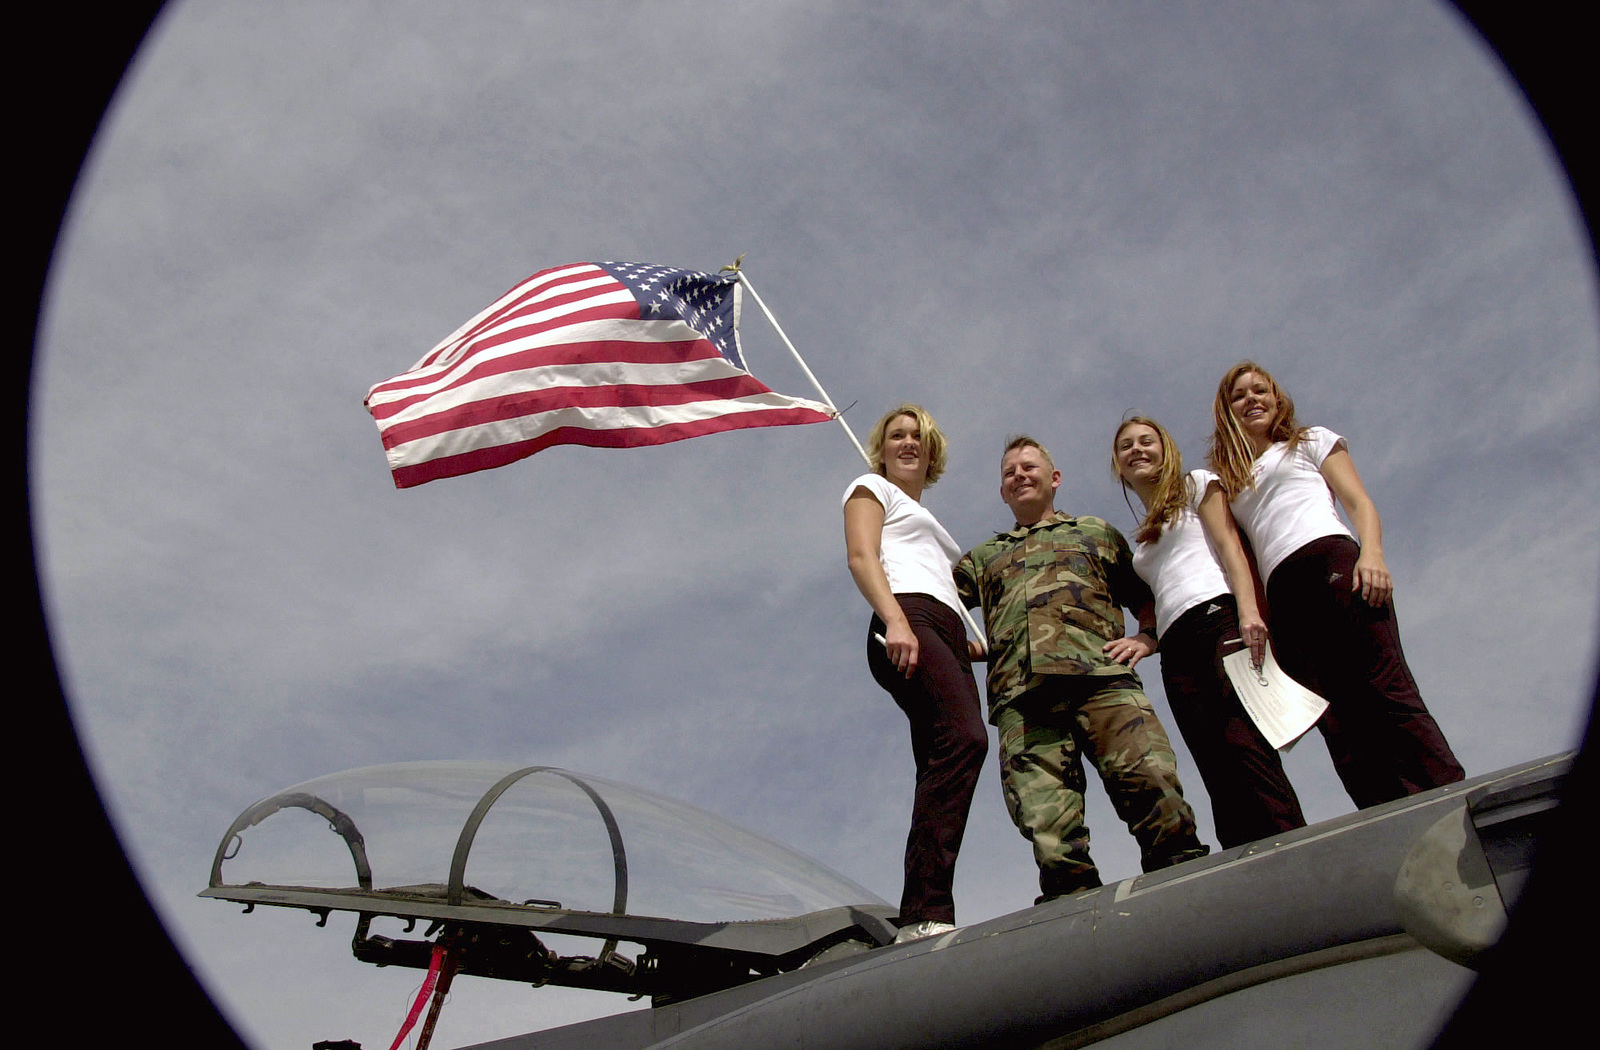 Low angle, fisheye lens view showing US Air Force (USAF) MASTER Sergeant (MSGT) Thomas Carter, First Sergeant for the 494th Fighter Squadron (FS), deployed at Incirlik Air Base (AB), Turkey, posing for a photograph with three members of the National Football League (NFL), Tampa Bay Buccaneers, Cheerleading Squad, while standing atop a USAF F-15E Strike Eagle aircraft. Members of the squad are visiting with deployed military personnel in support of Operation ENDURING FREEDOM